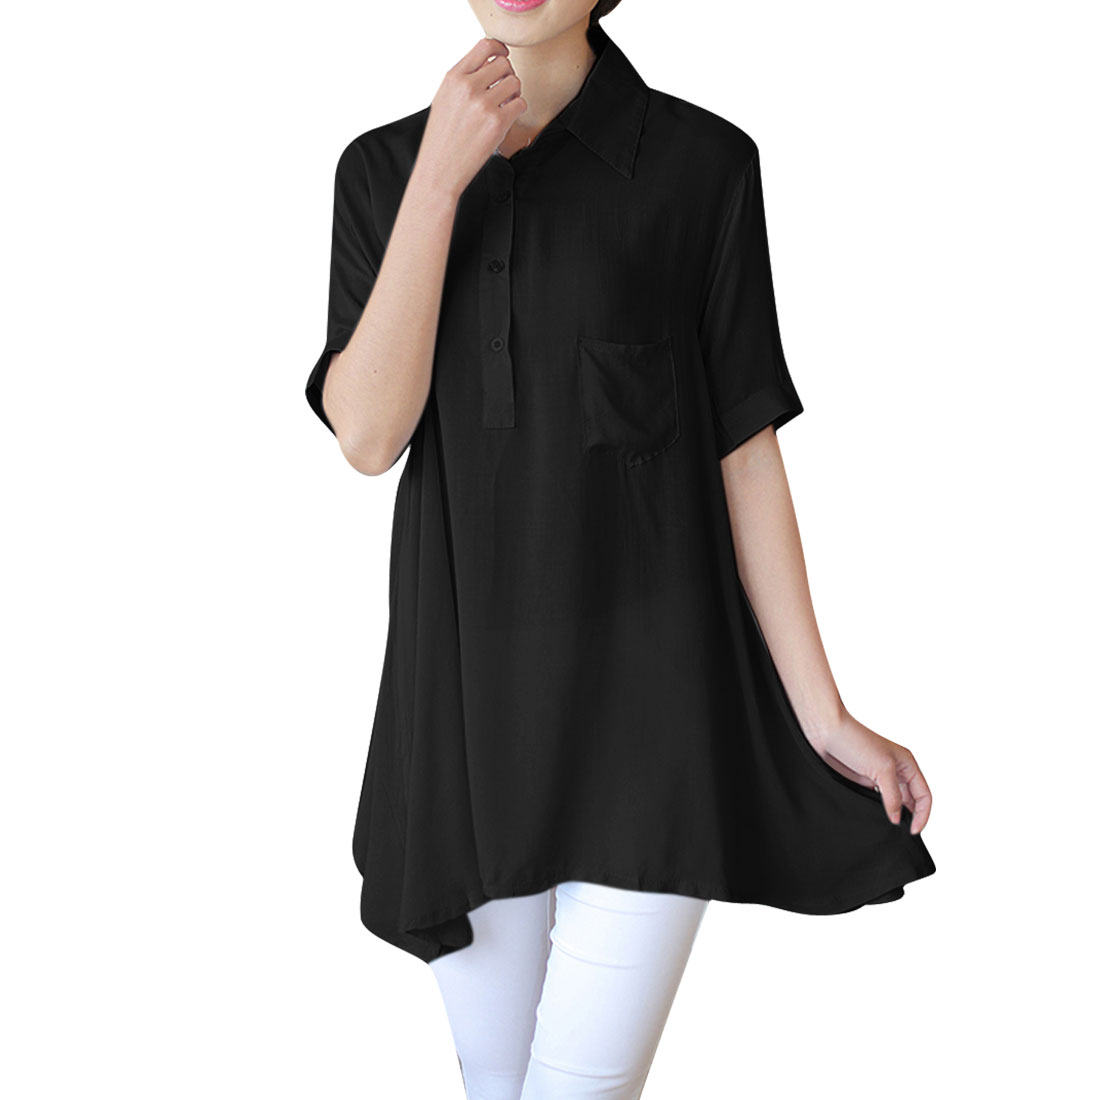 Allegra K Women's Short Sleeve 1/2 Placket Casual Tunic Shirt Black (Size XL / 16)